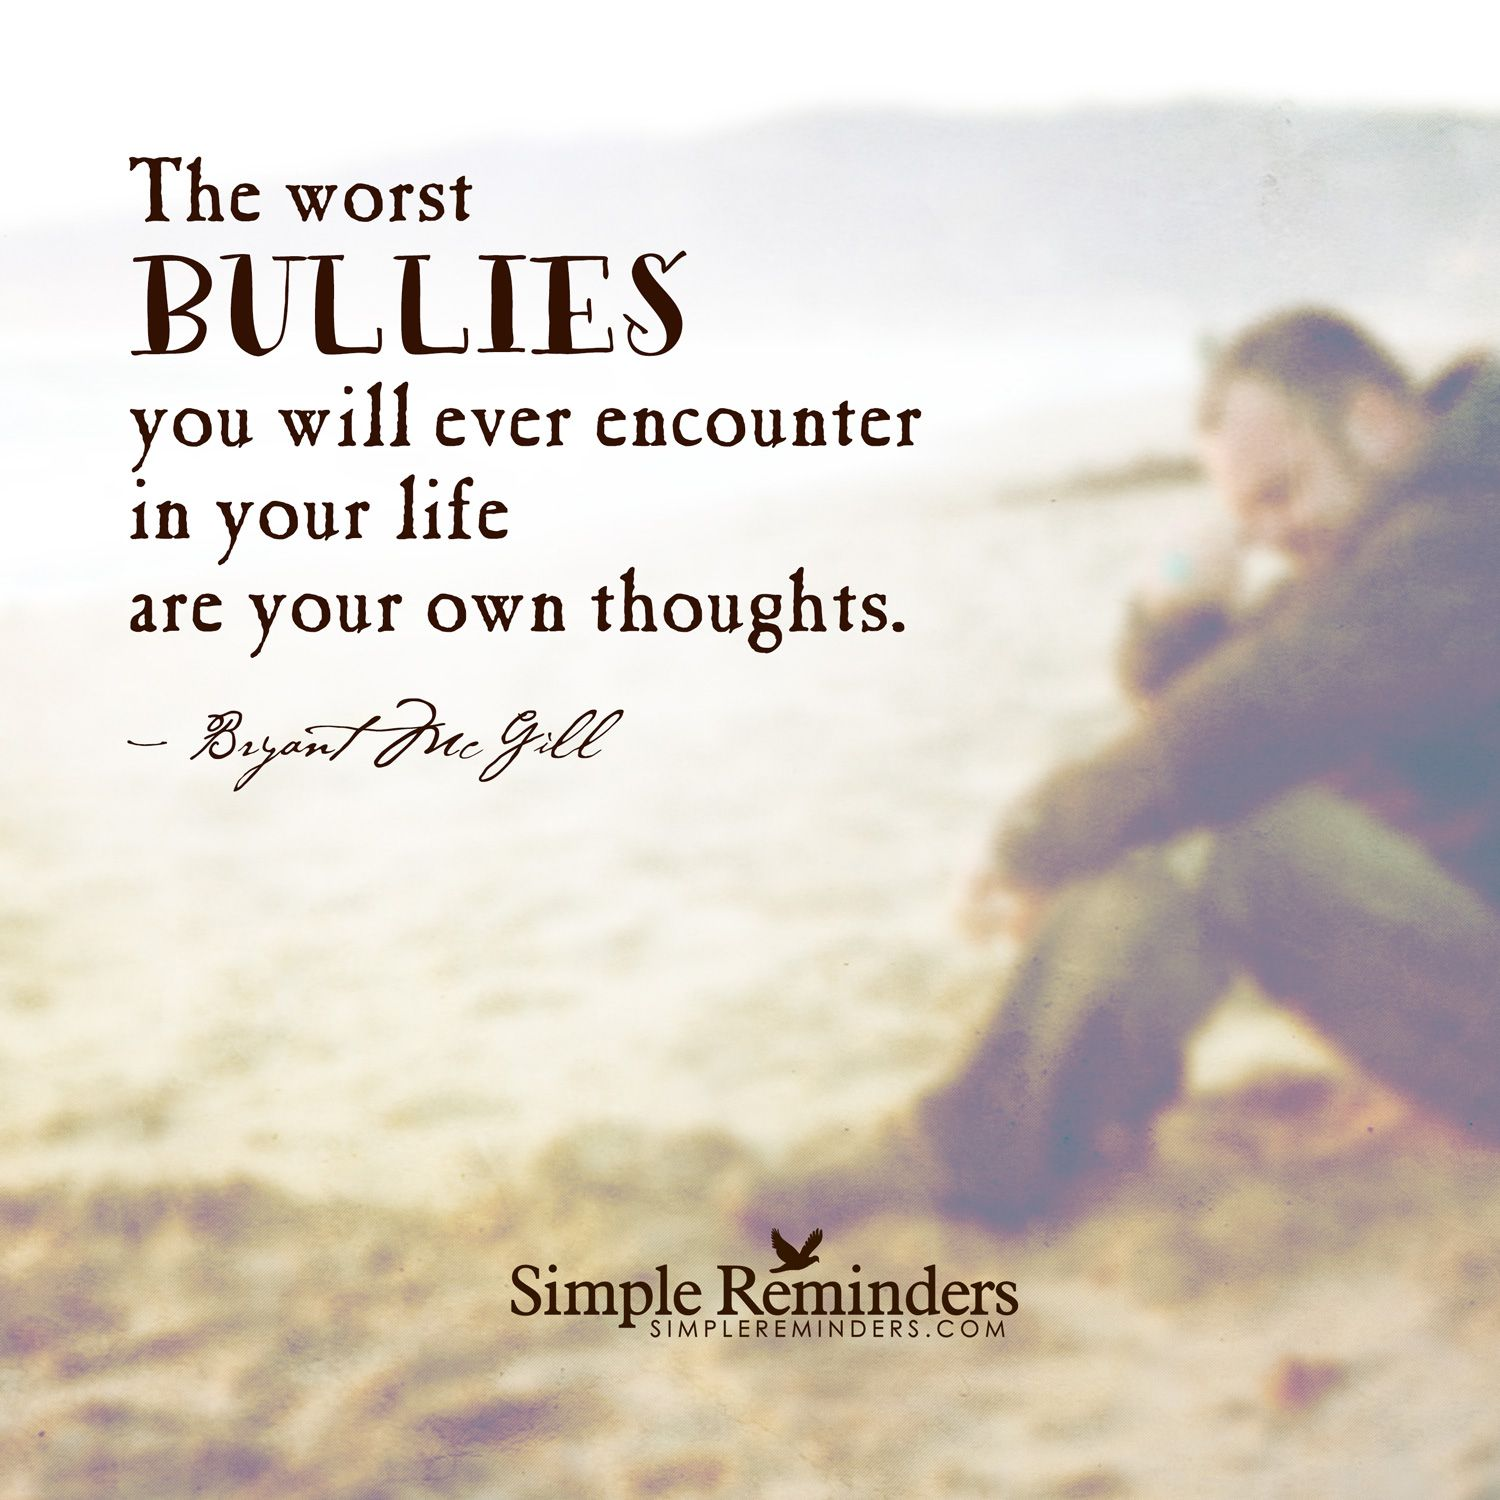 Daily Inspirational Thoughts The Worst Bullies You Will Ever Encounter In Your Life Are Your